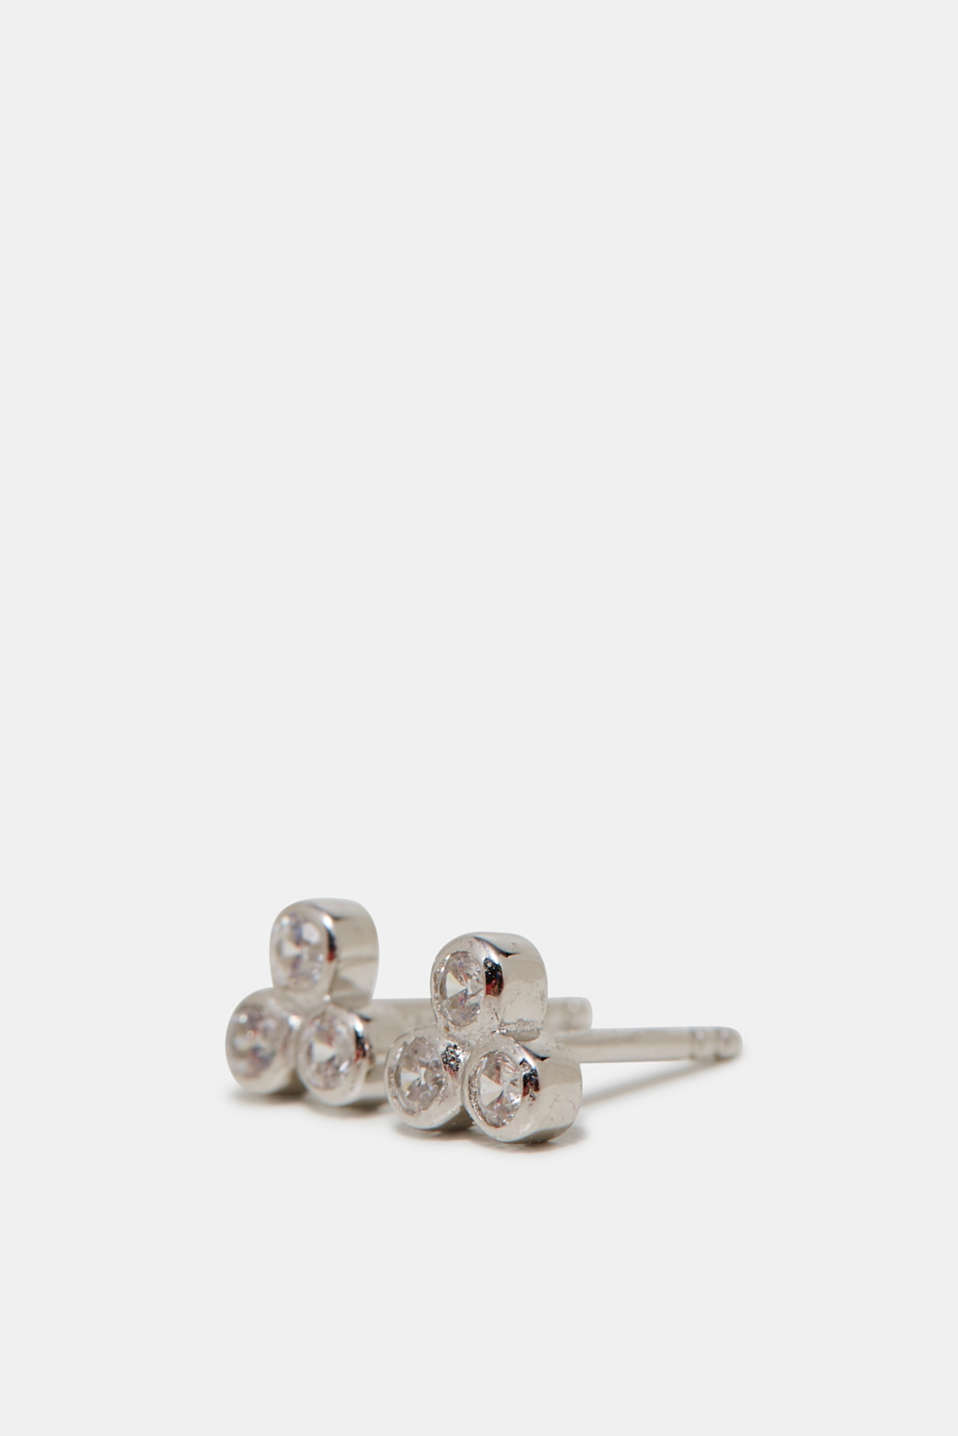 Esprit - Stud earrings with zirconia, in silver